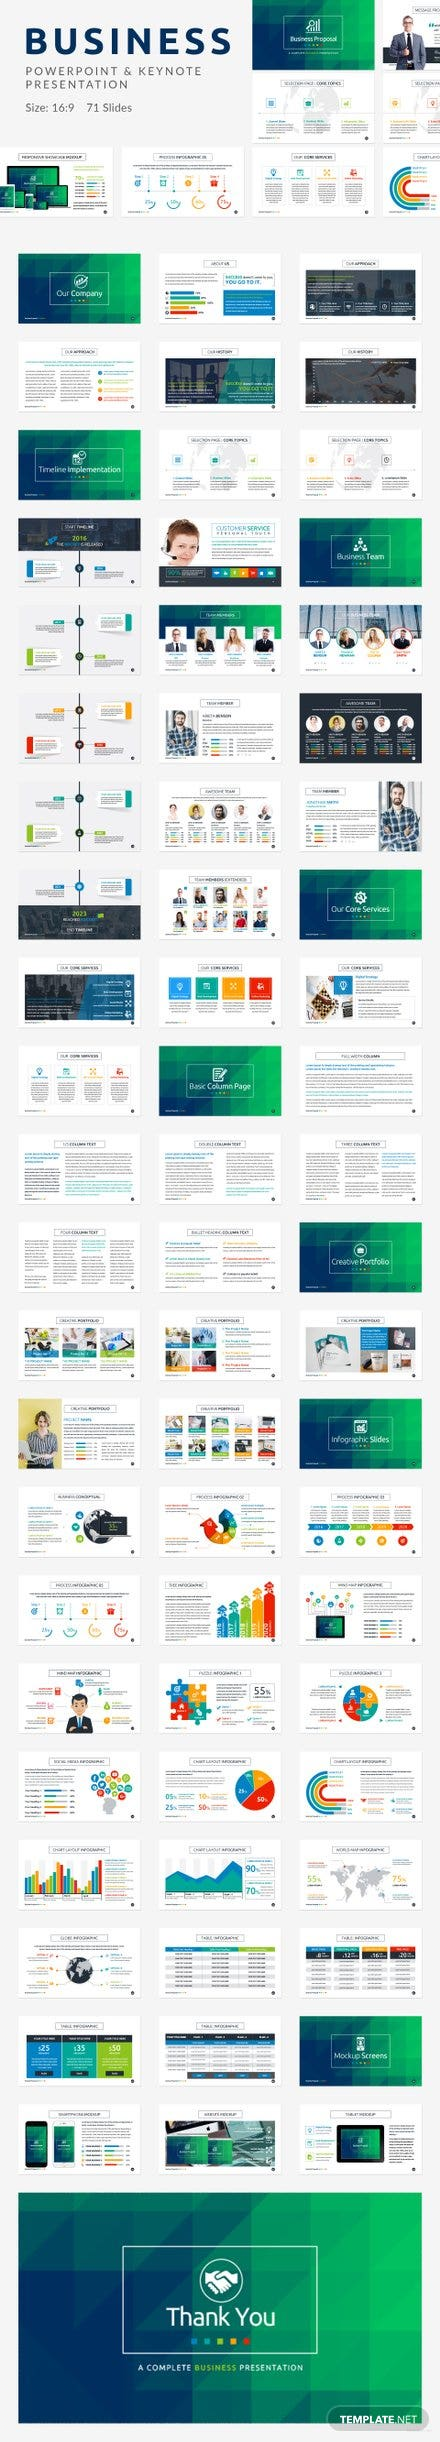 Business proposal presentation template free templates business proposal presentation template wajeb Choice Image